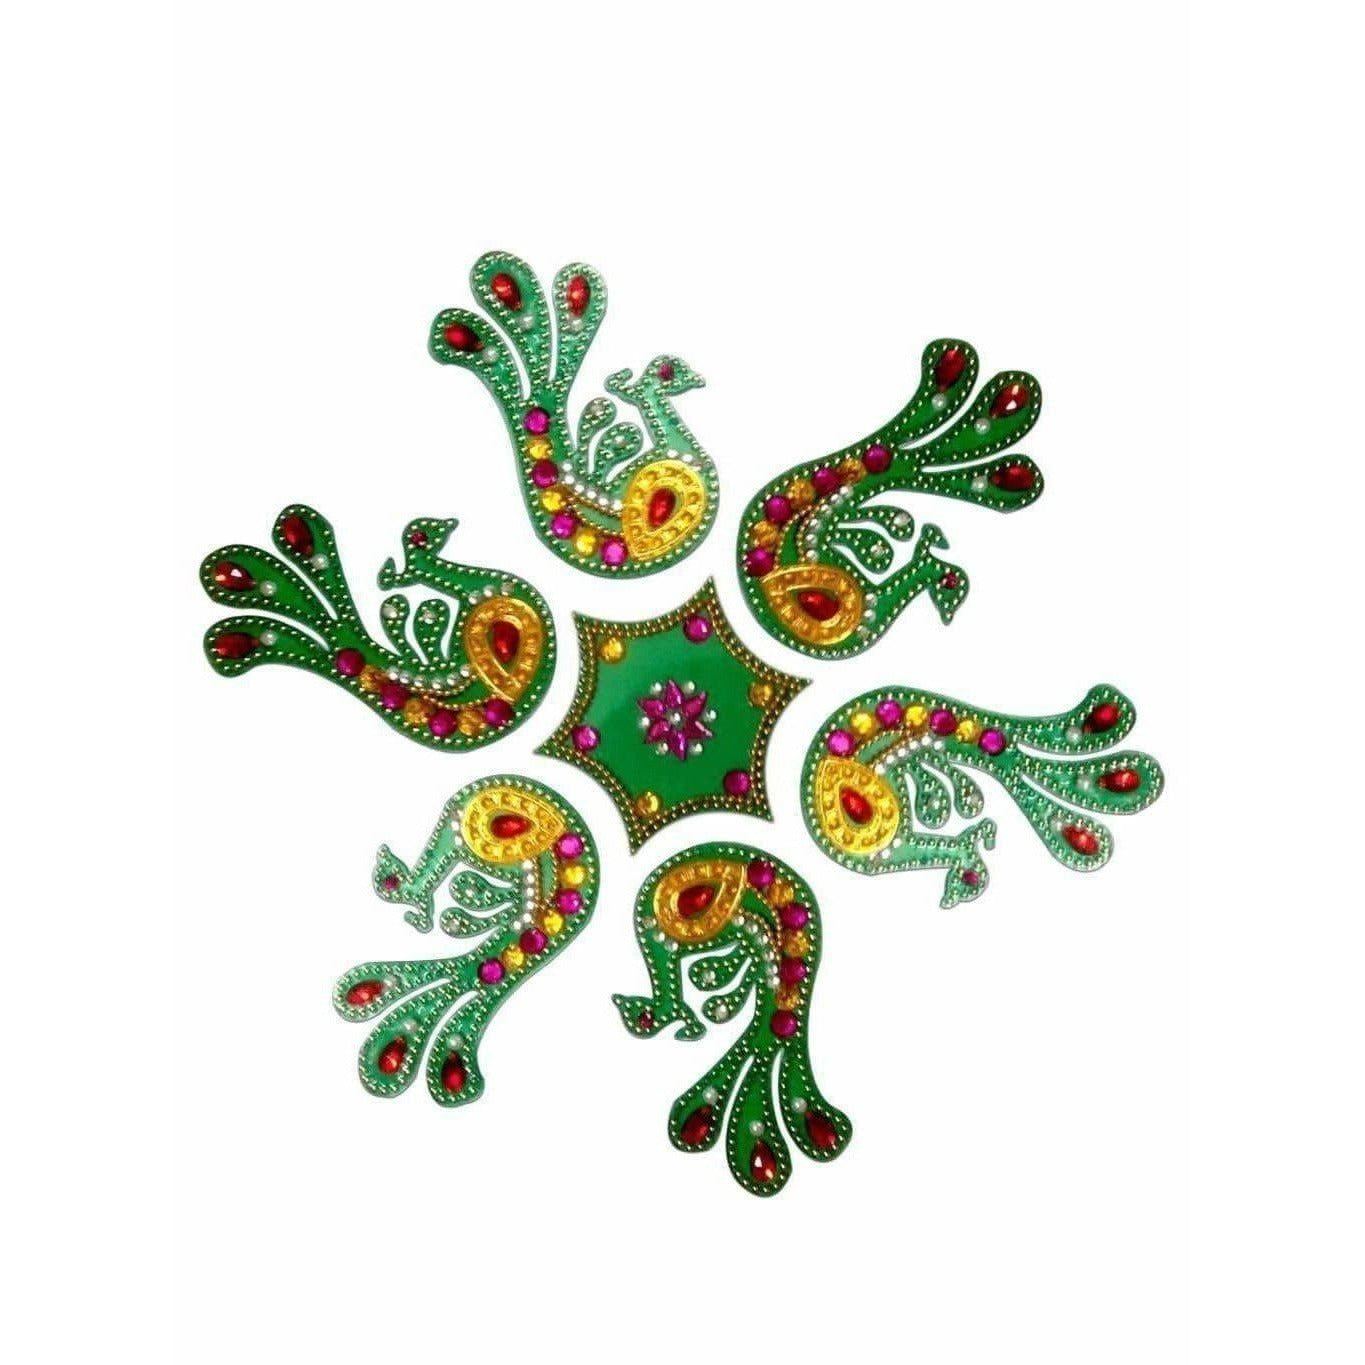 Beautiful peacock Shaped Kundan Rangoli Design Green color For Floor Decoration and Pooja Decoration - Dista Cart